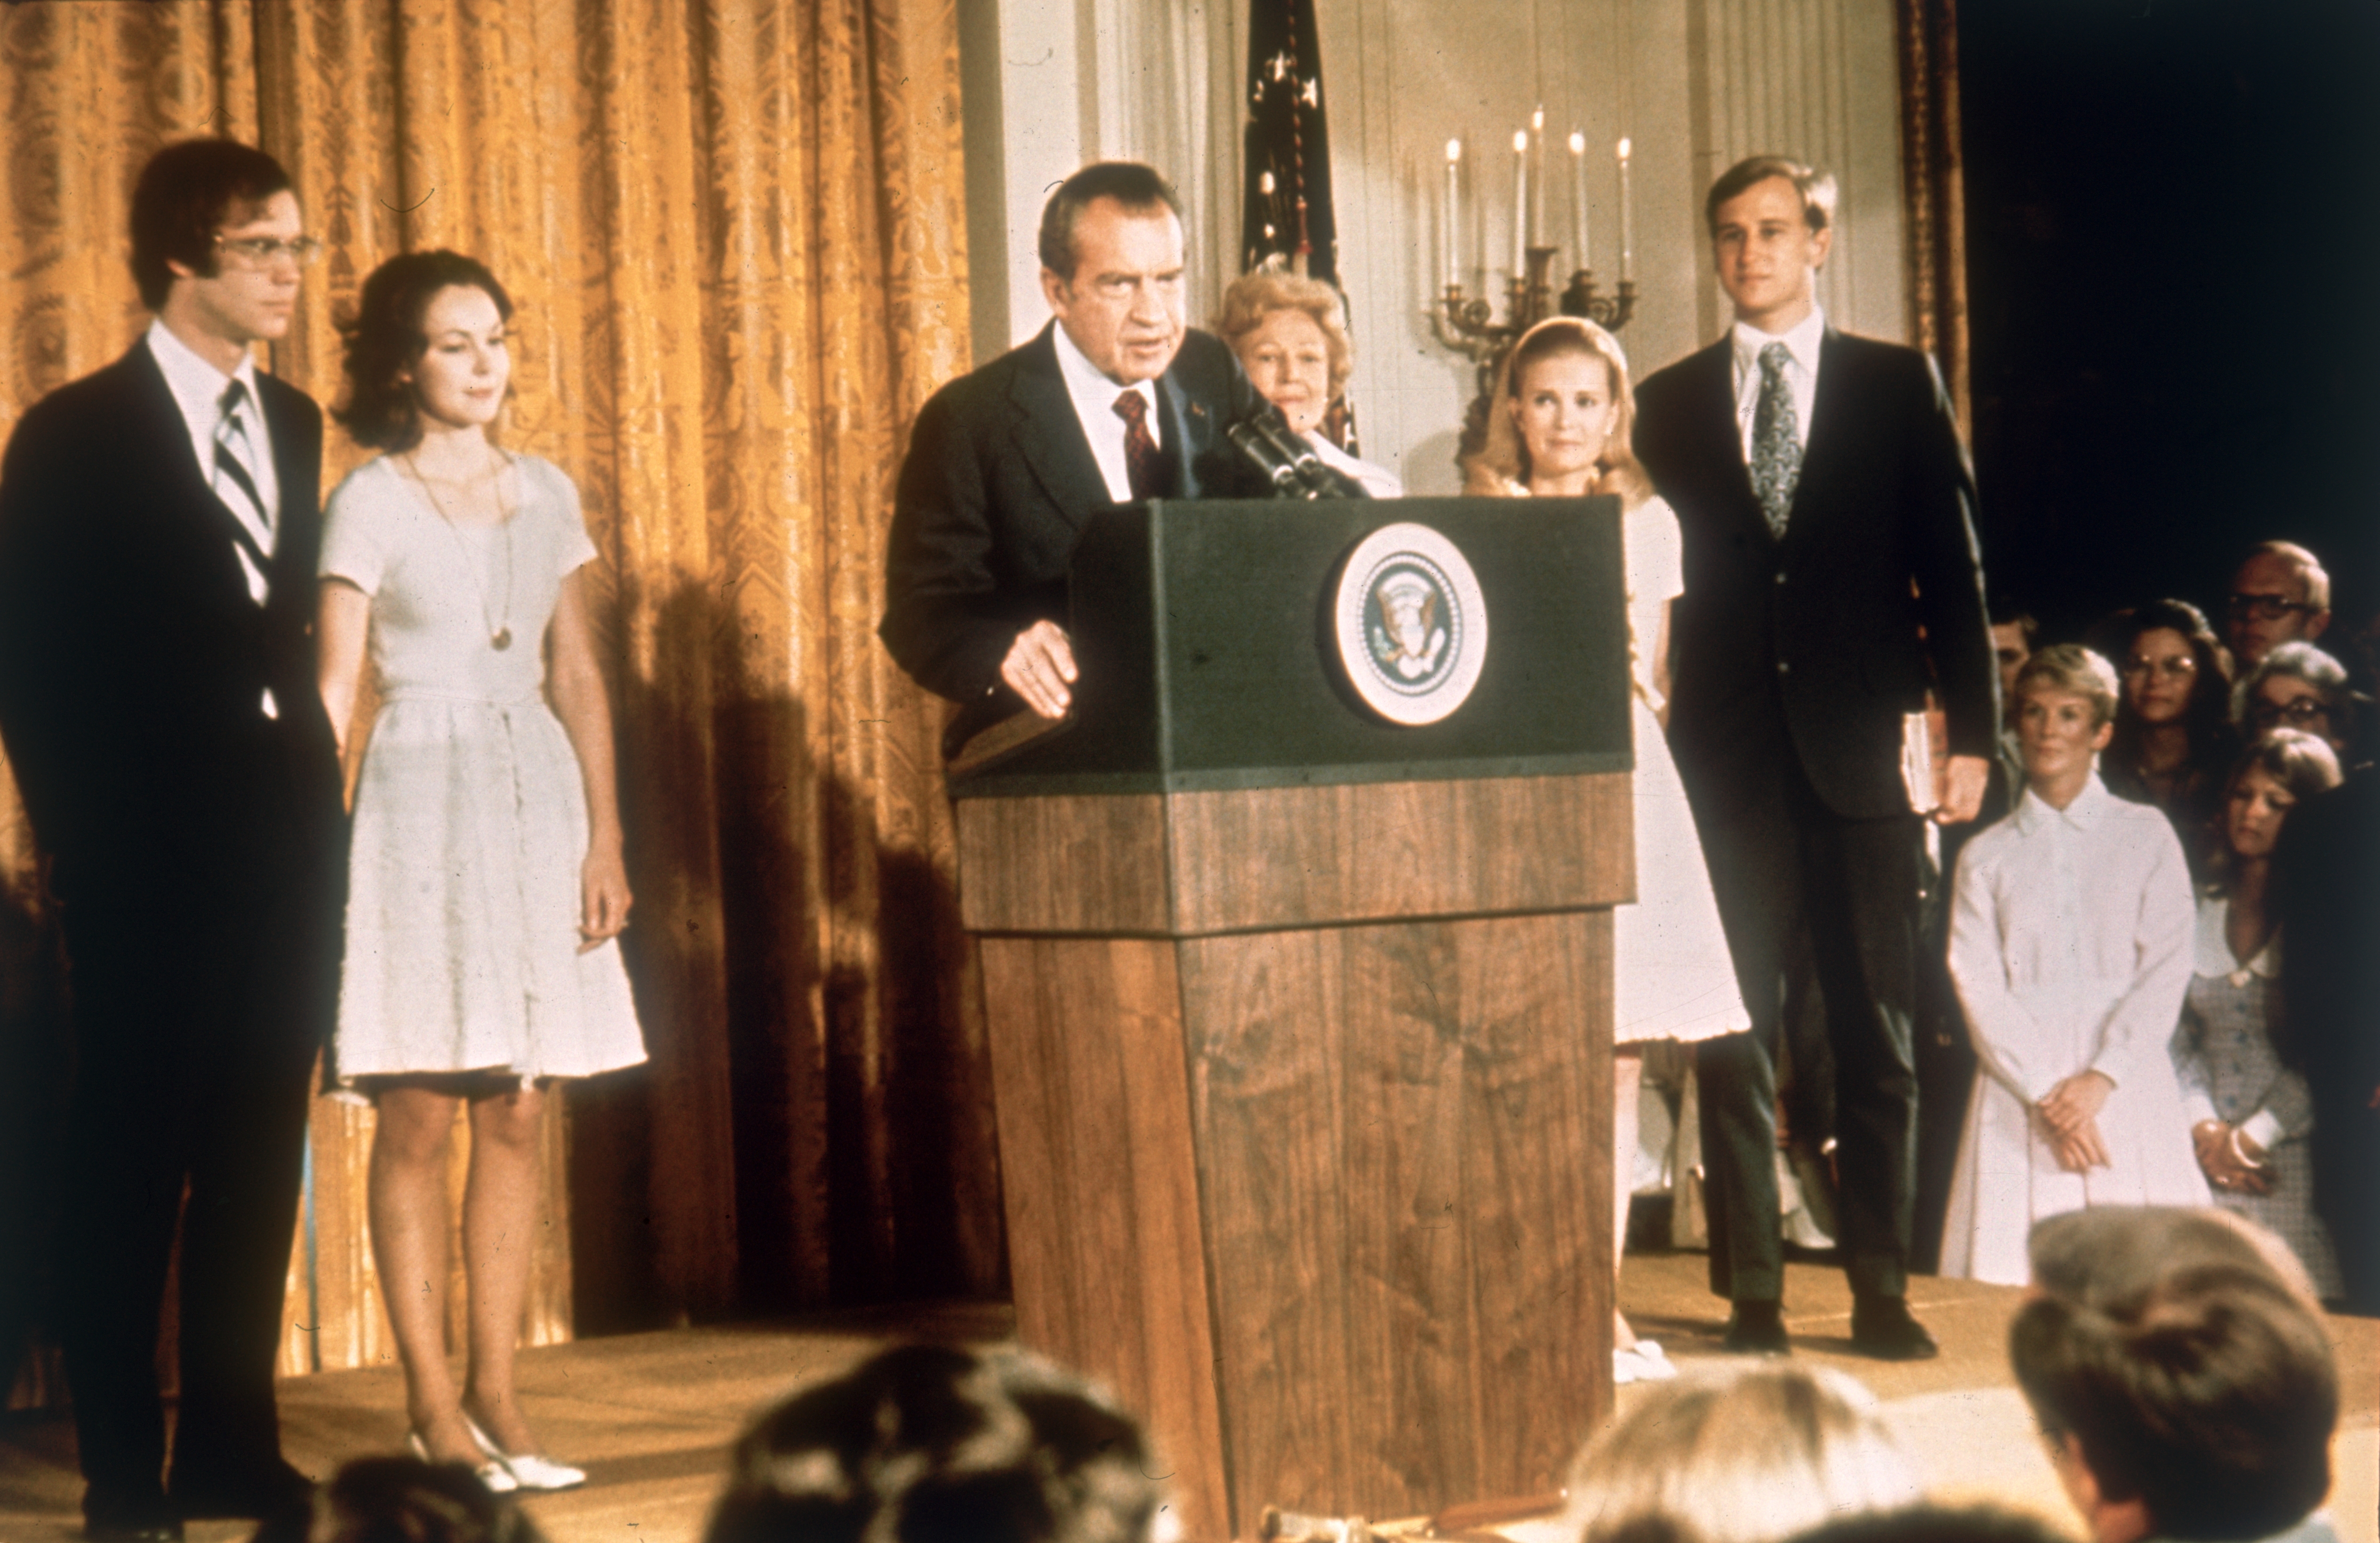 American politician Richard Nixon (1913 - 1994) at the White House with his family after his resignation as President, 9th August 1974. From left, son-in-law David Eisenhower, Julie Nixon-Eisenhower, Richard Nixon, Pat Nixon (1912 - 1993), Tricia Nixon and her husband Edward Cox, August 1974.